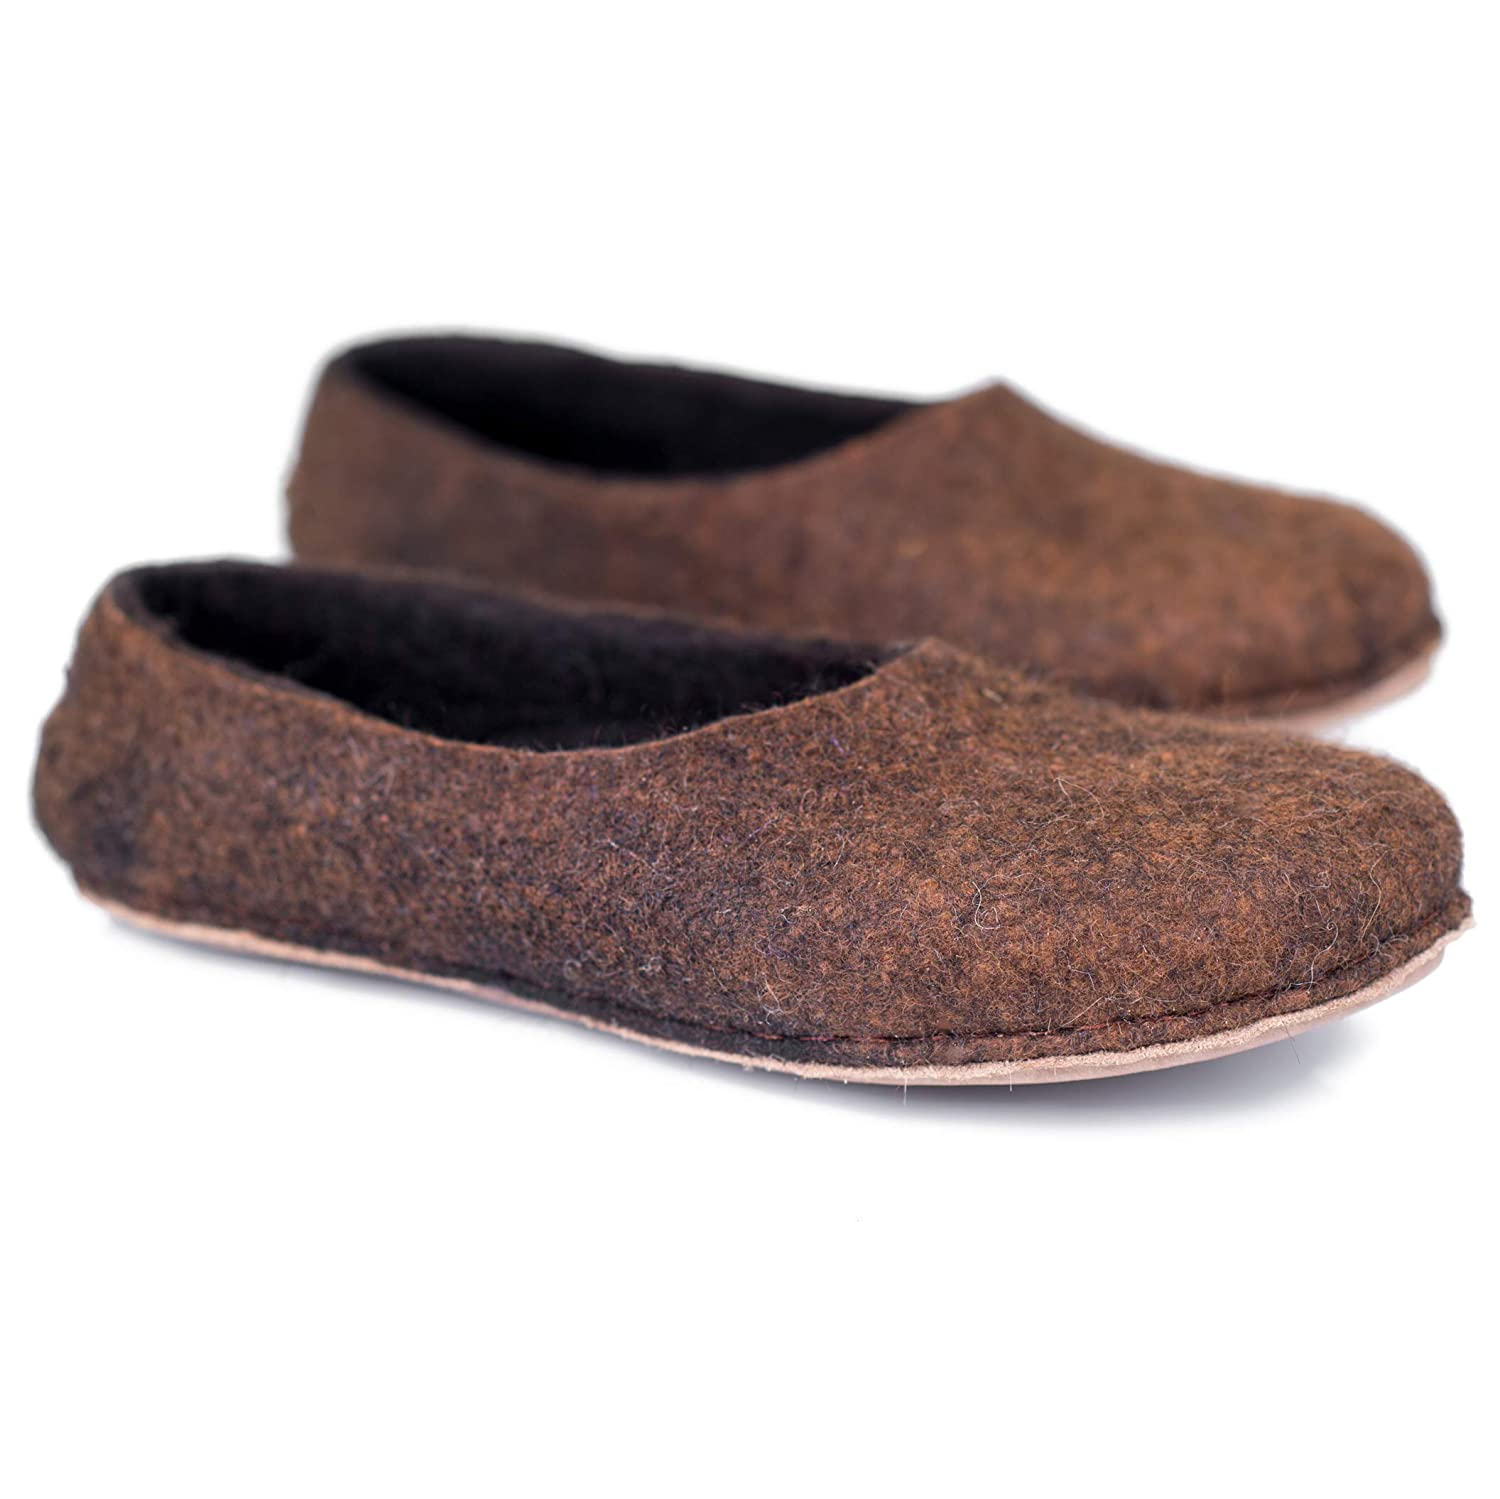 BureBure Classic Long-awaited Mens Slippers Handmade from Felted Max 84% OFF Undye Shoes